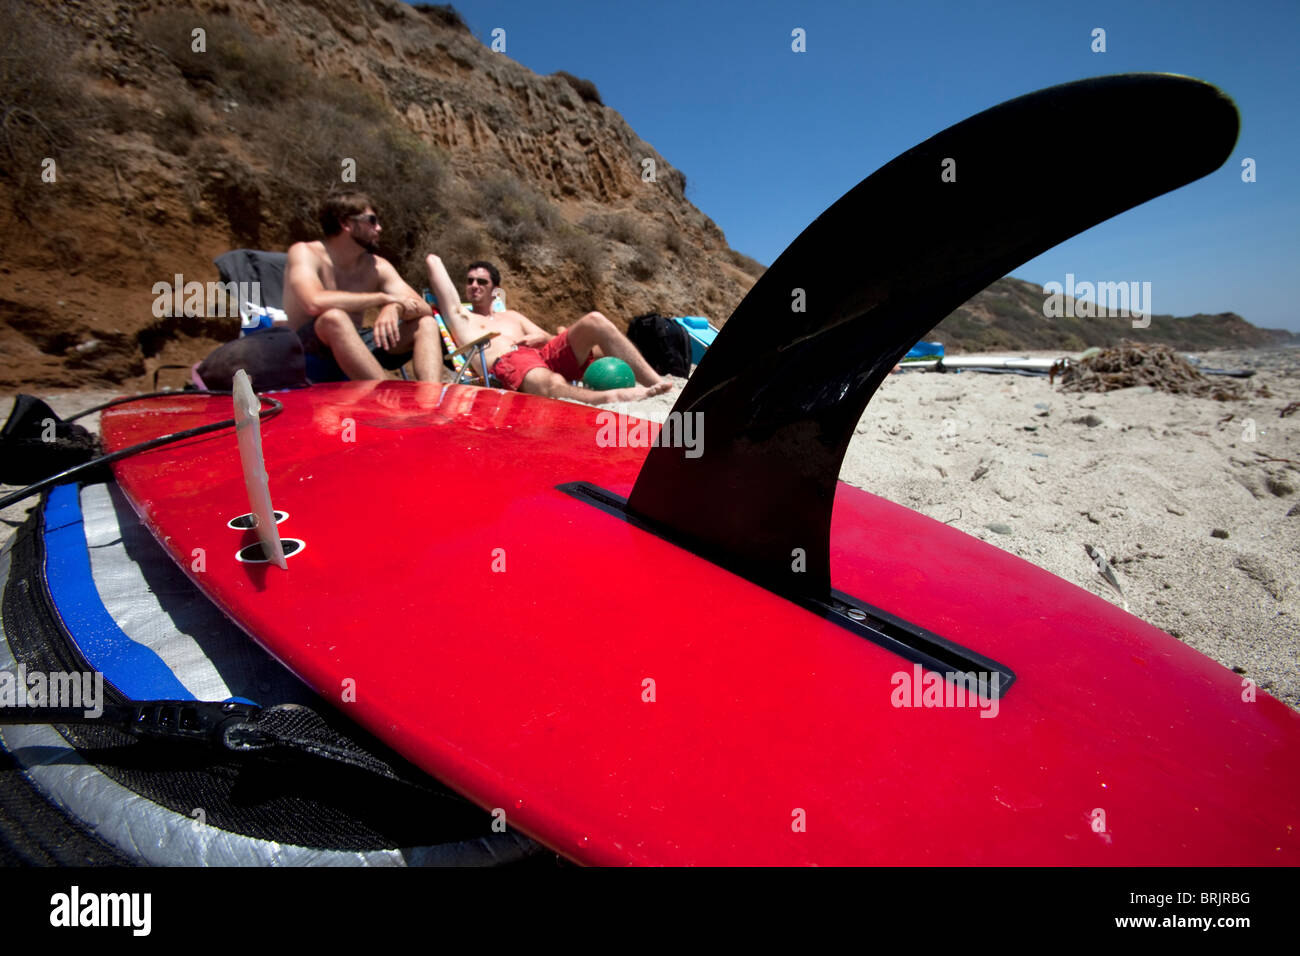 Two men lounging on the beach with a surfboard prominent in the foreground. - Stock Image